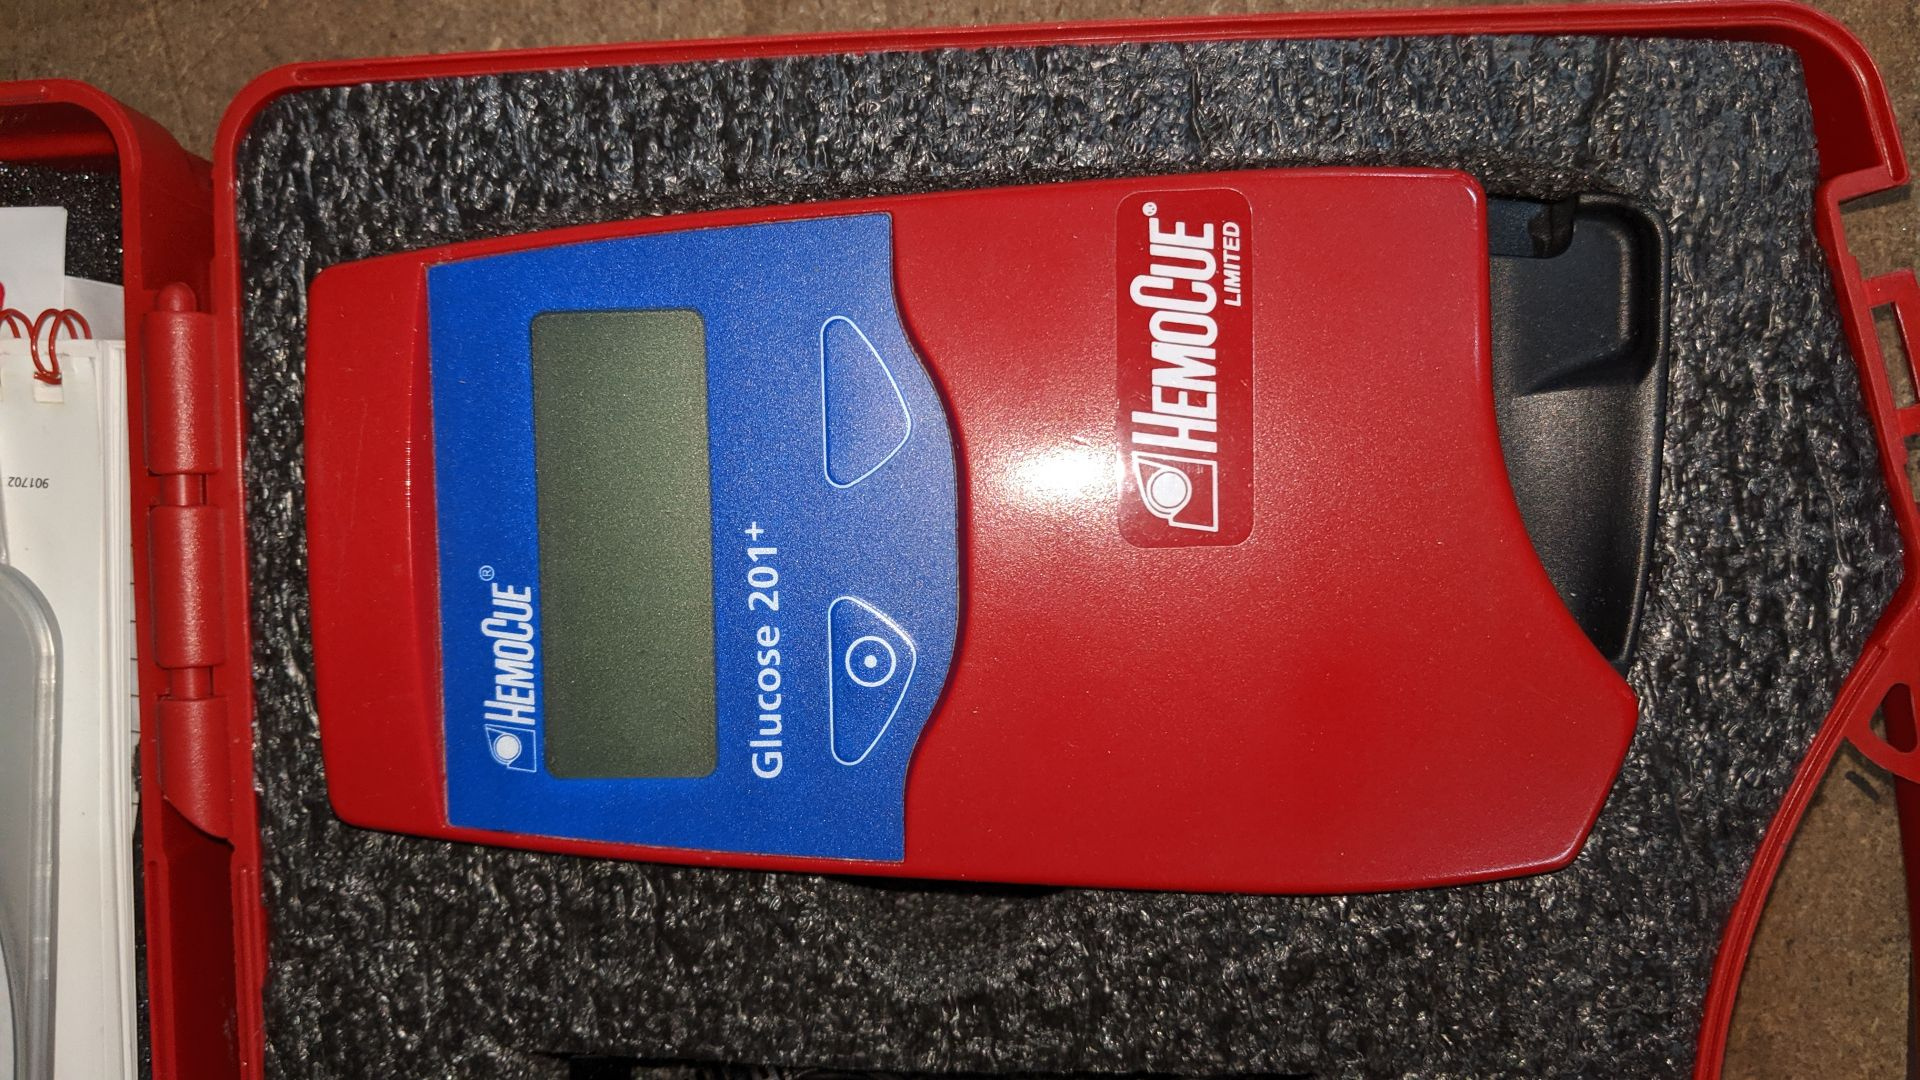 Lot 530 - HemoCue Glucose 201+ monitoring system in case. This is one of a large number of lots used/owned